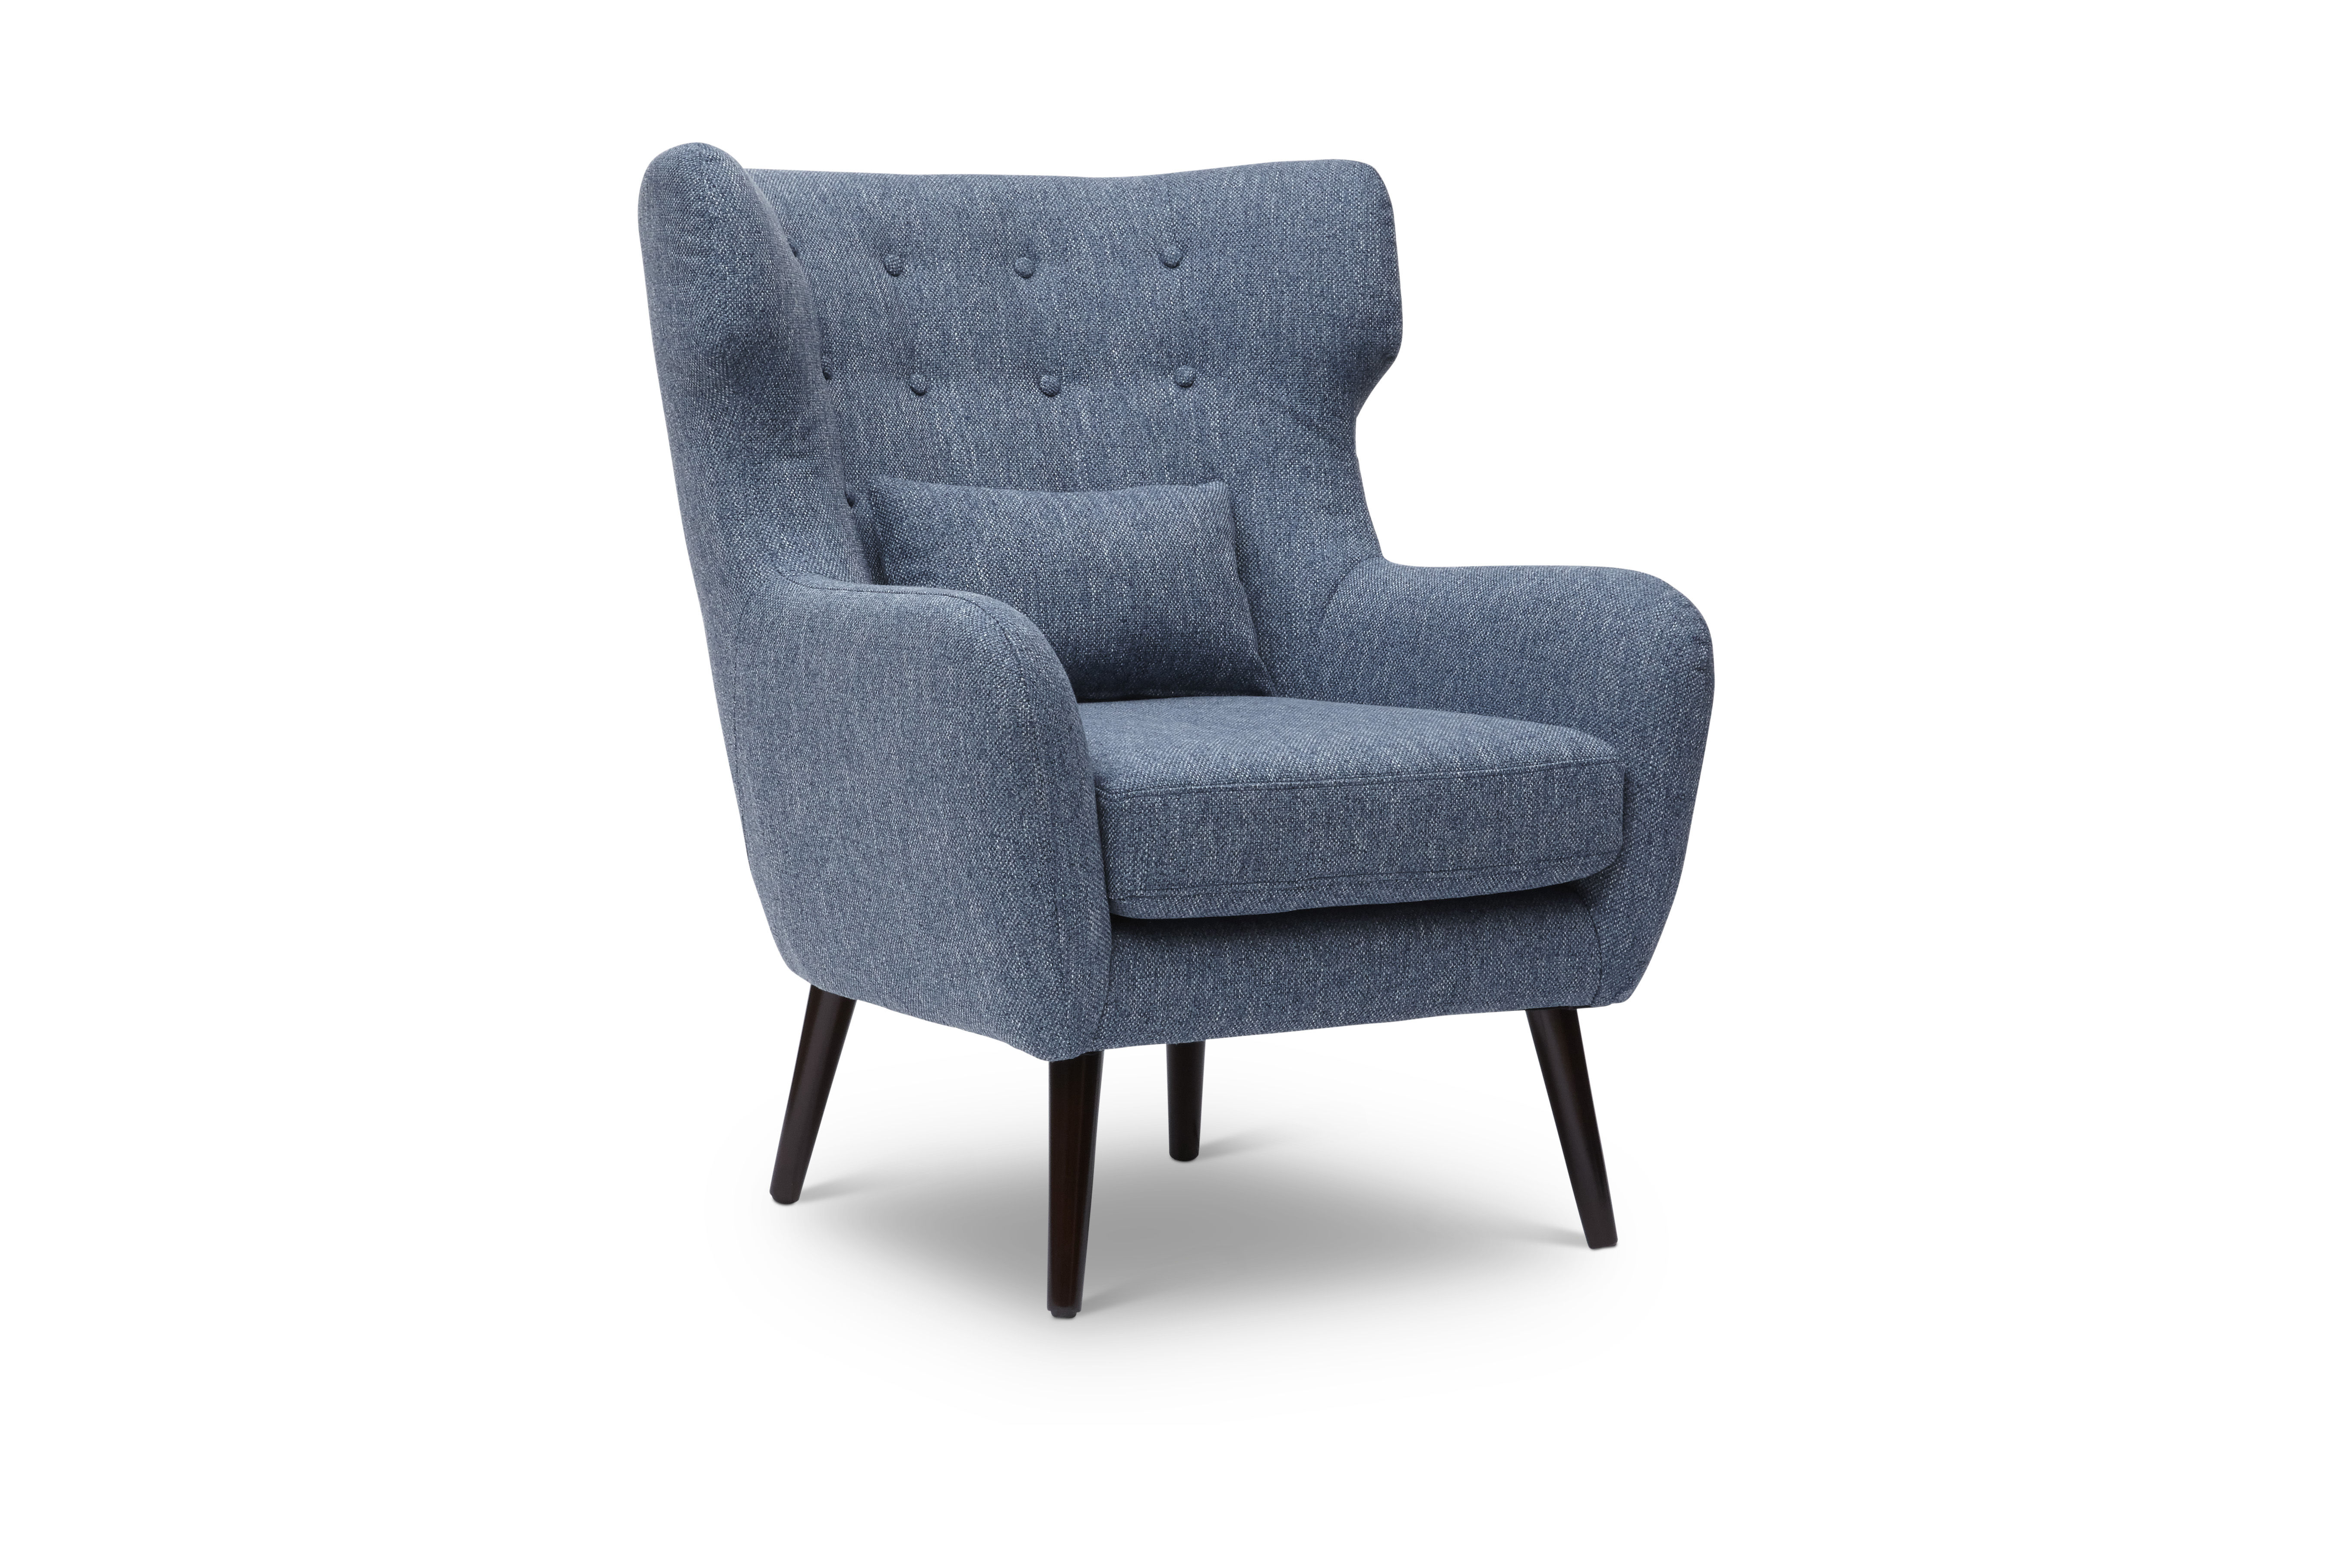 Blue Modern Accent Chairs.Jofran Furniture Ava Blue Modern Accent Chair The Classy Home